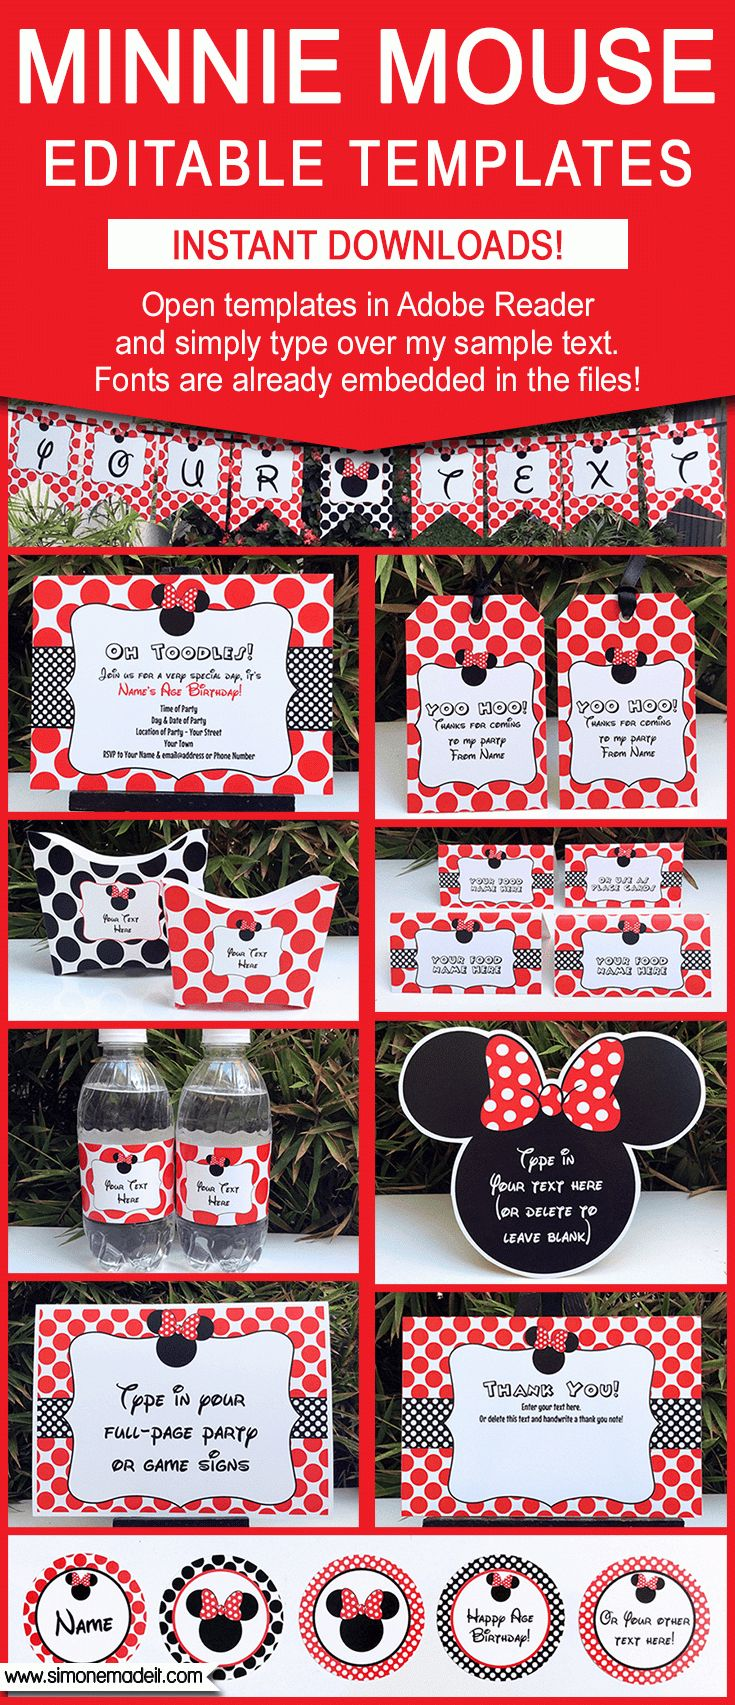 Black & Red Minnie Mouse Party Printables, Invitations & Decorations | Birthday Party | Editable Theme Templates | Via SIMONEmadeit.com | $12.50